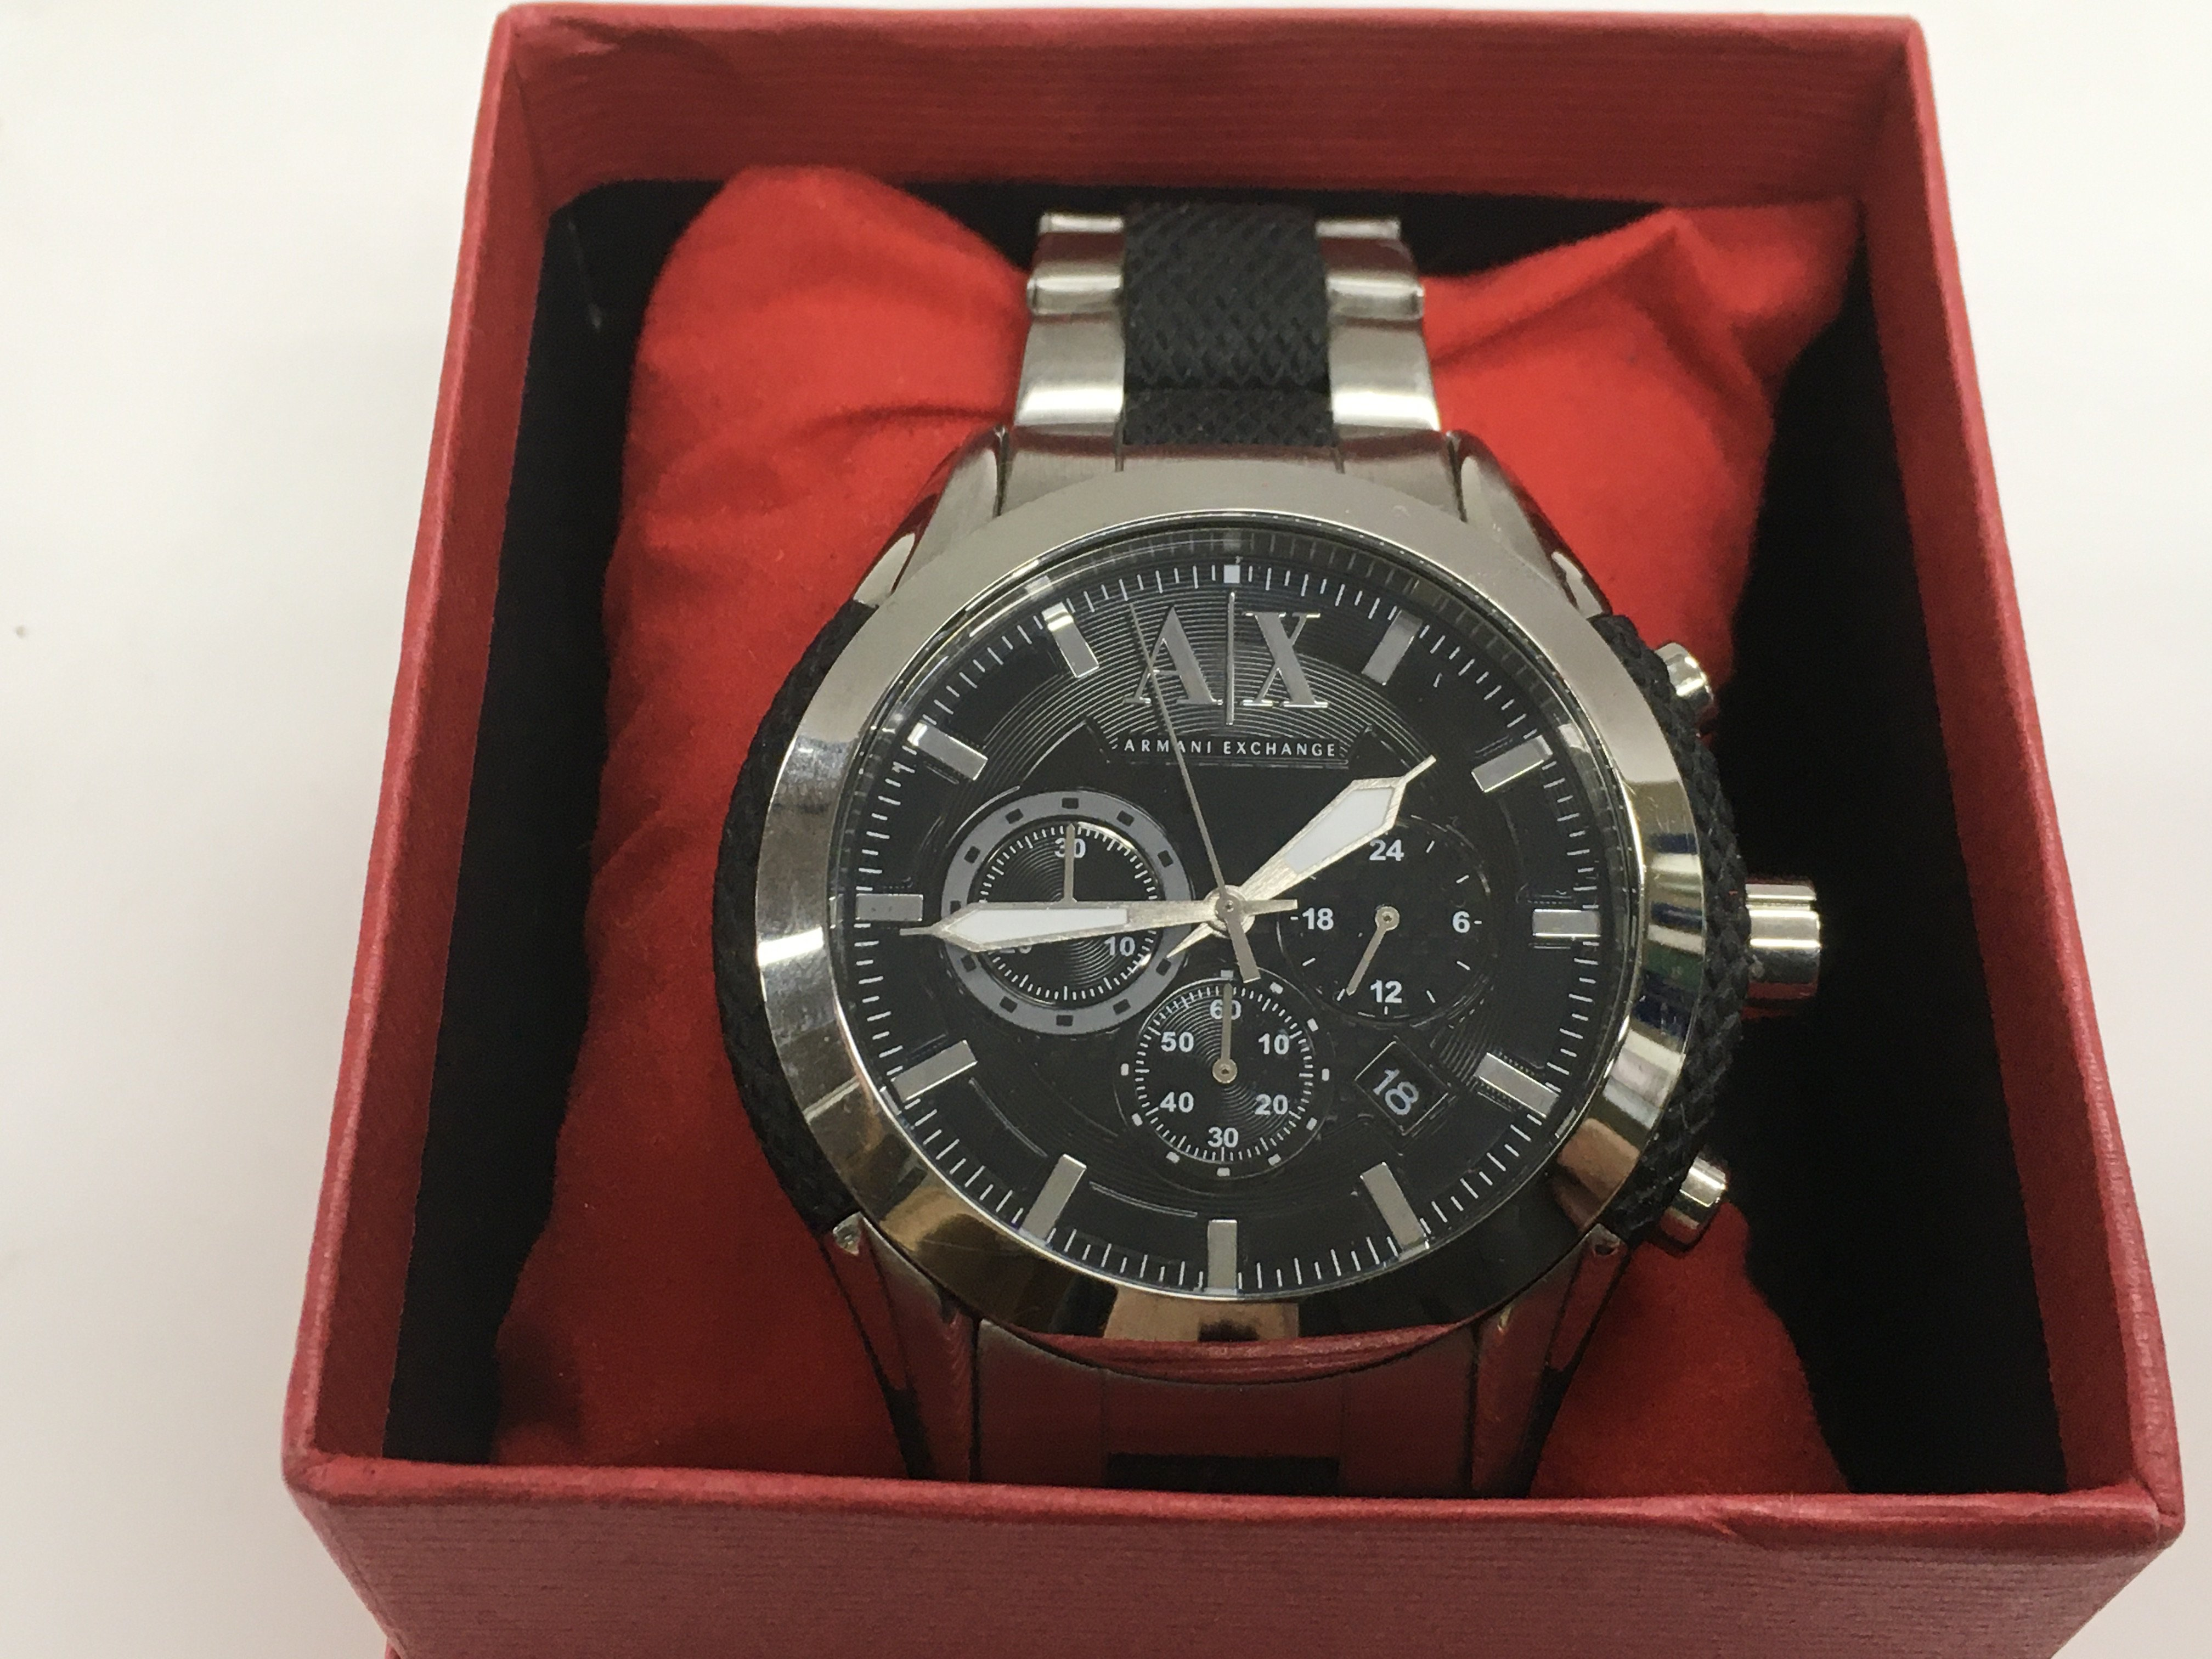 Lot 54 - A gents Armani exchange chronograph watch.